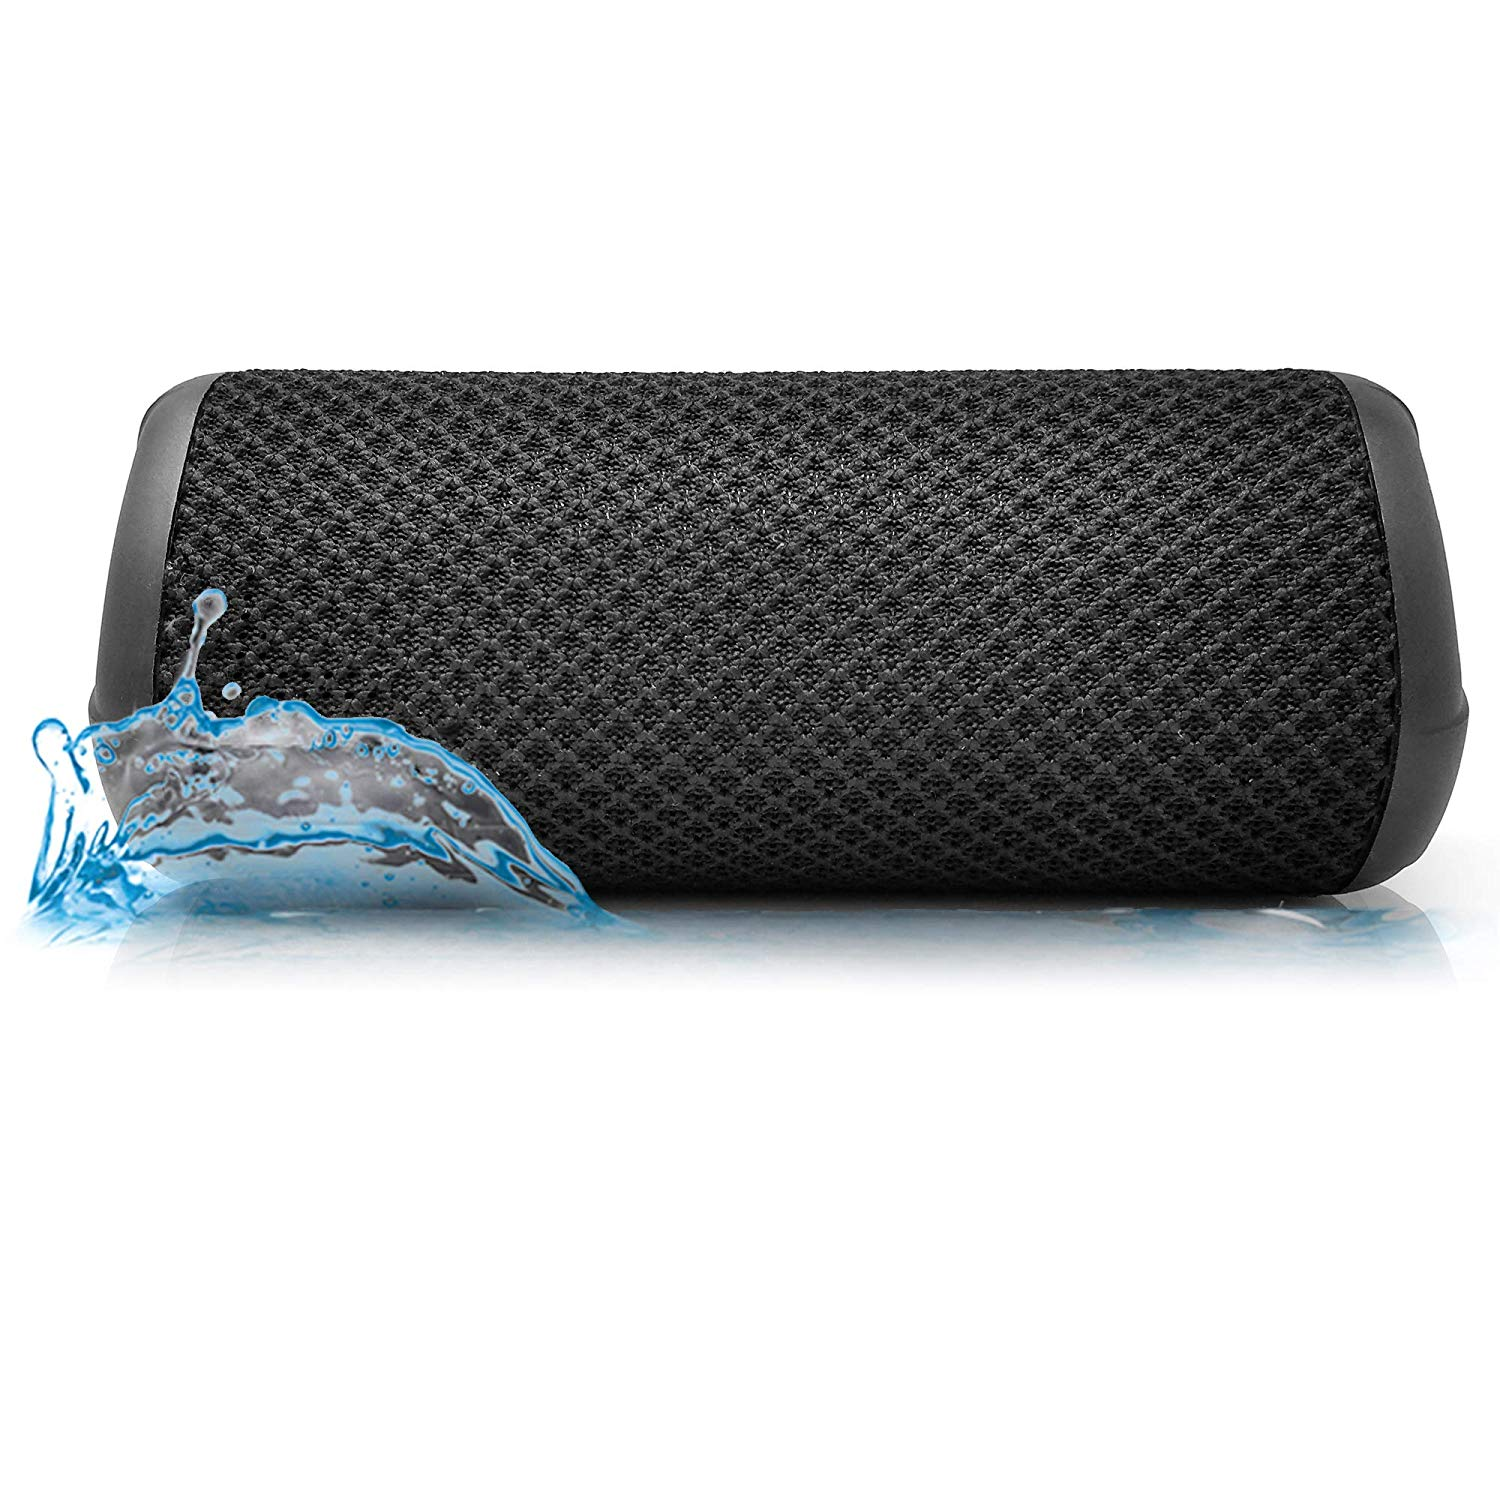 Photive HYDRA II IPX7 Waterproof Wireless Bluetooth Speaker. 10-Watt Dual-Driver Subwoofer 60ft Wireless Range and 10-Hours of Continuous Play.